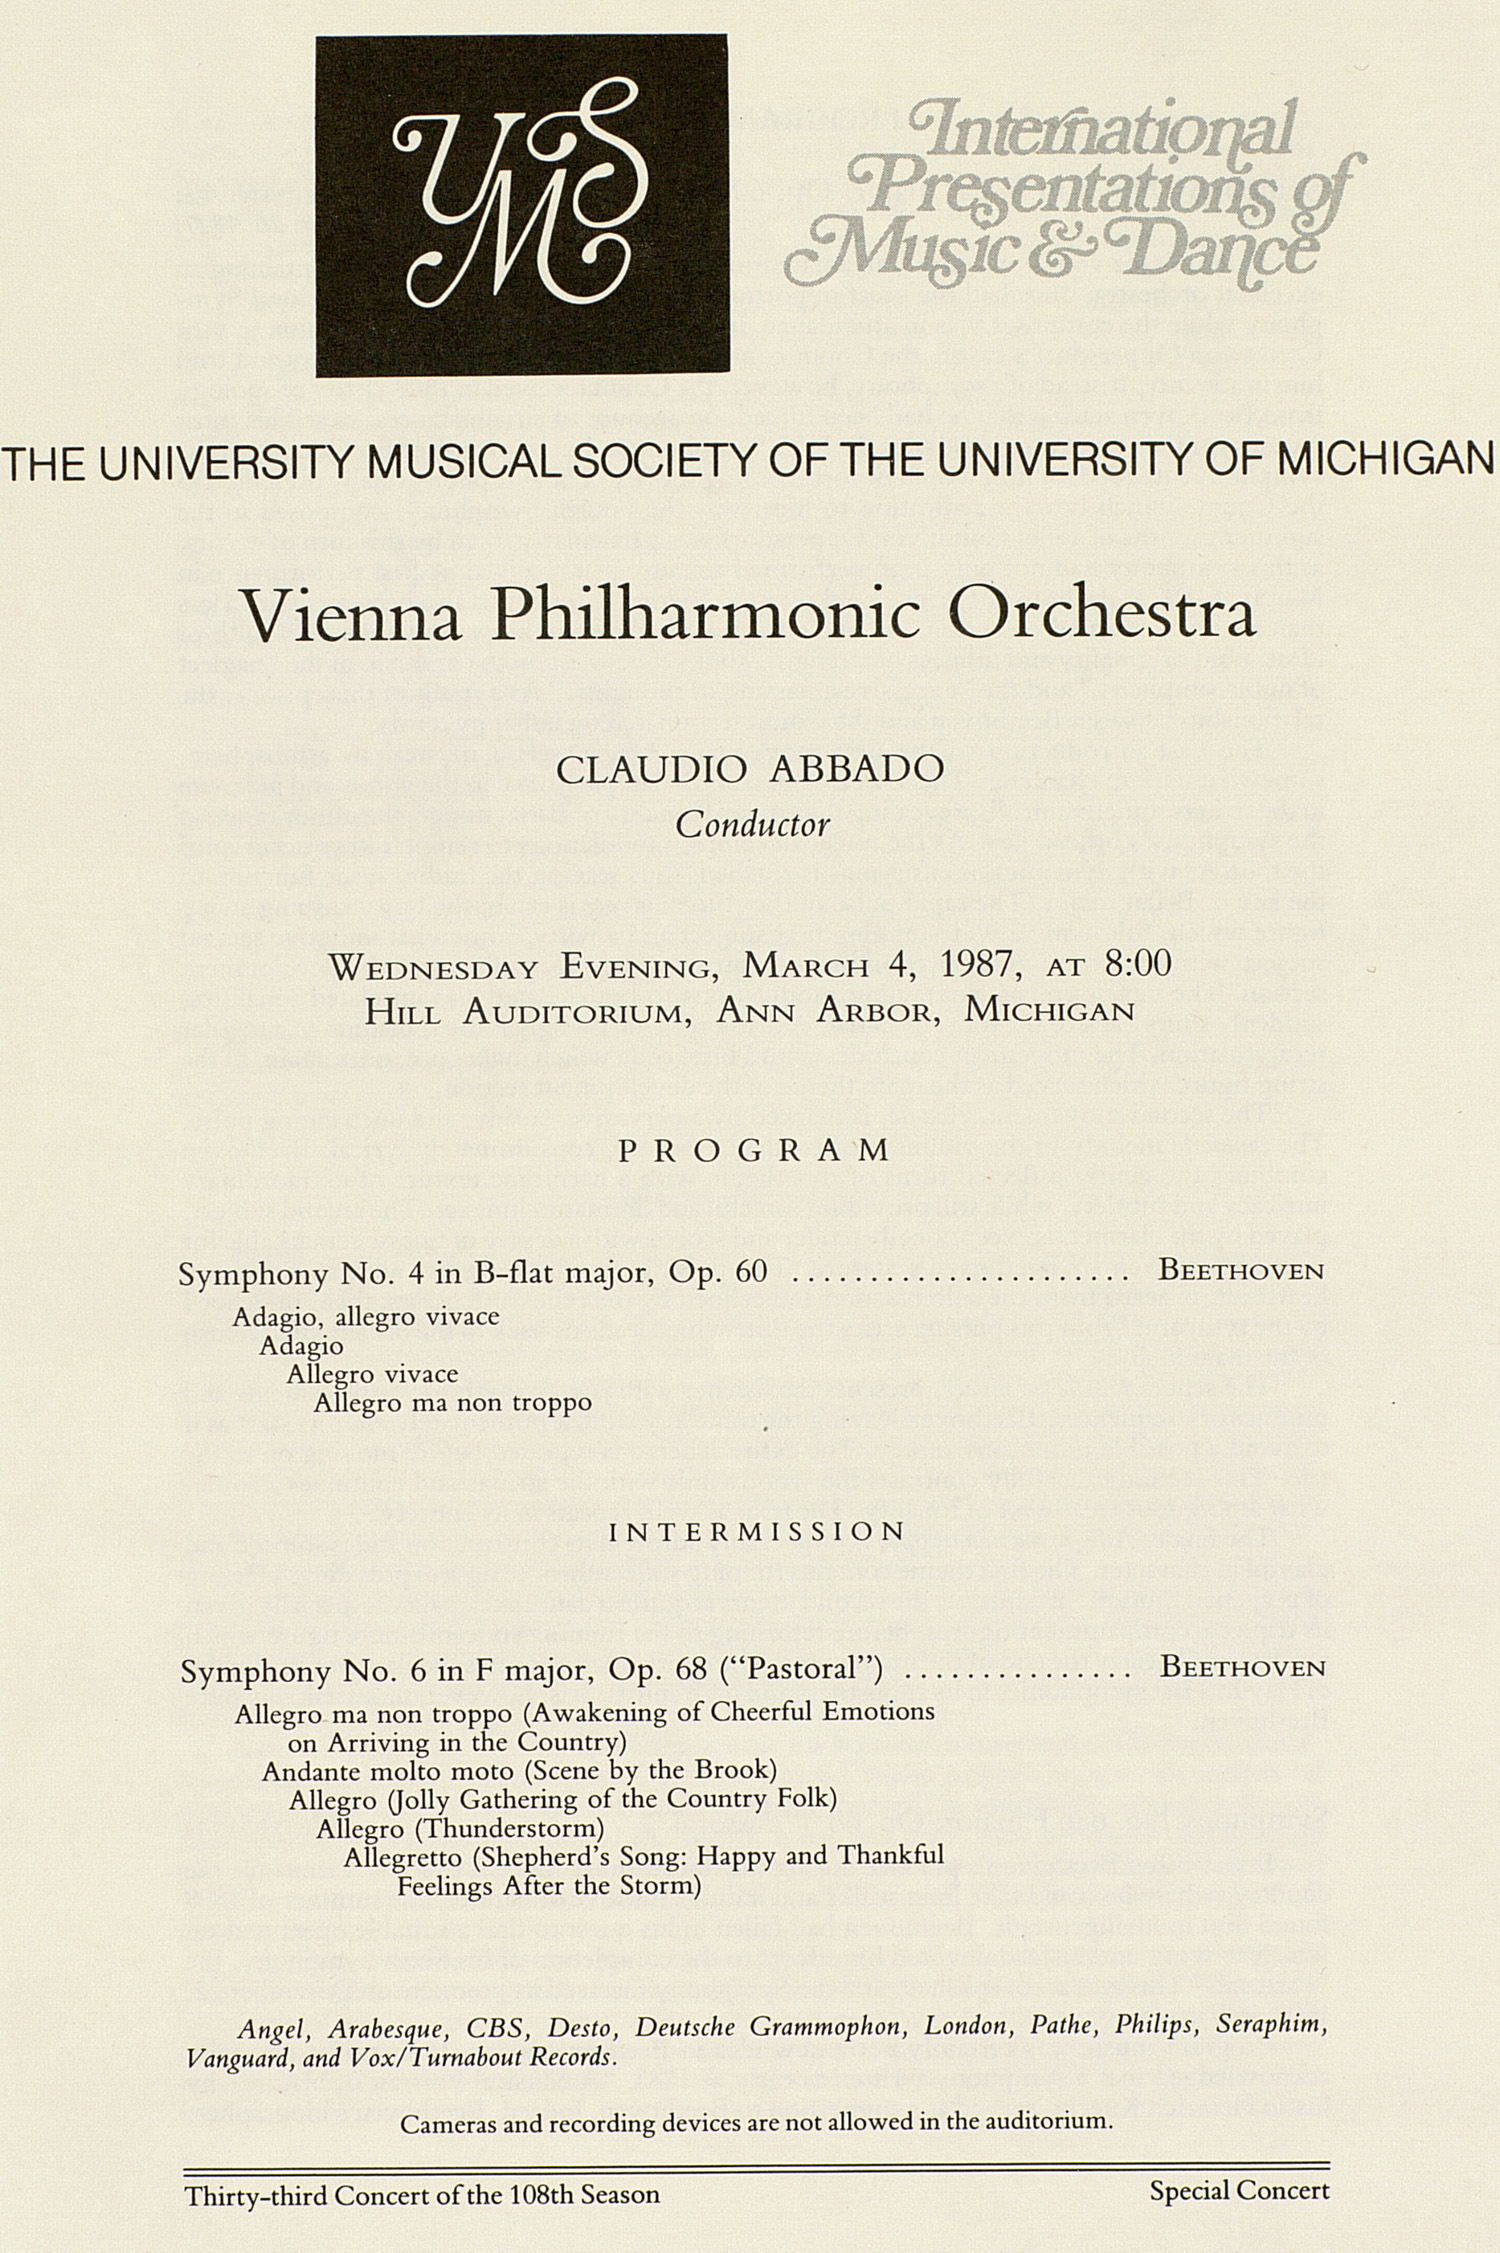 UMS Concert Program, March 4, 1987: International Presentations Of Music & Dance -- Vienna Philharmonic Orchestra image